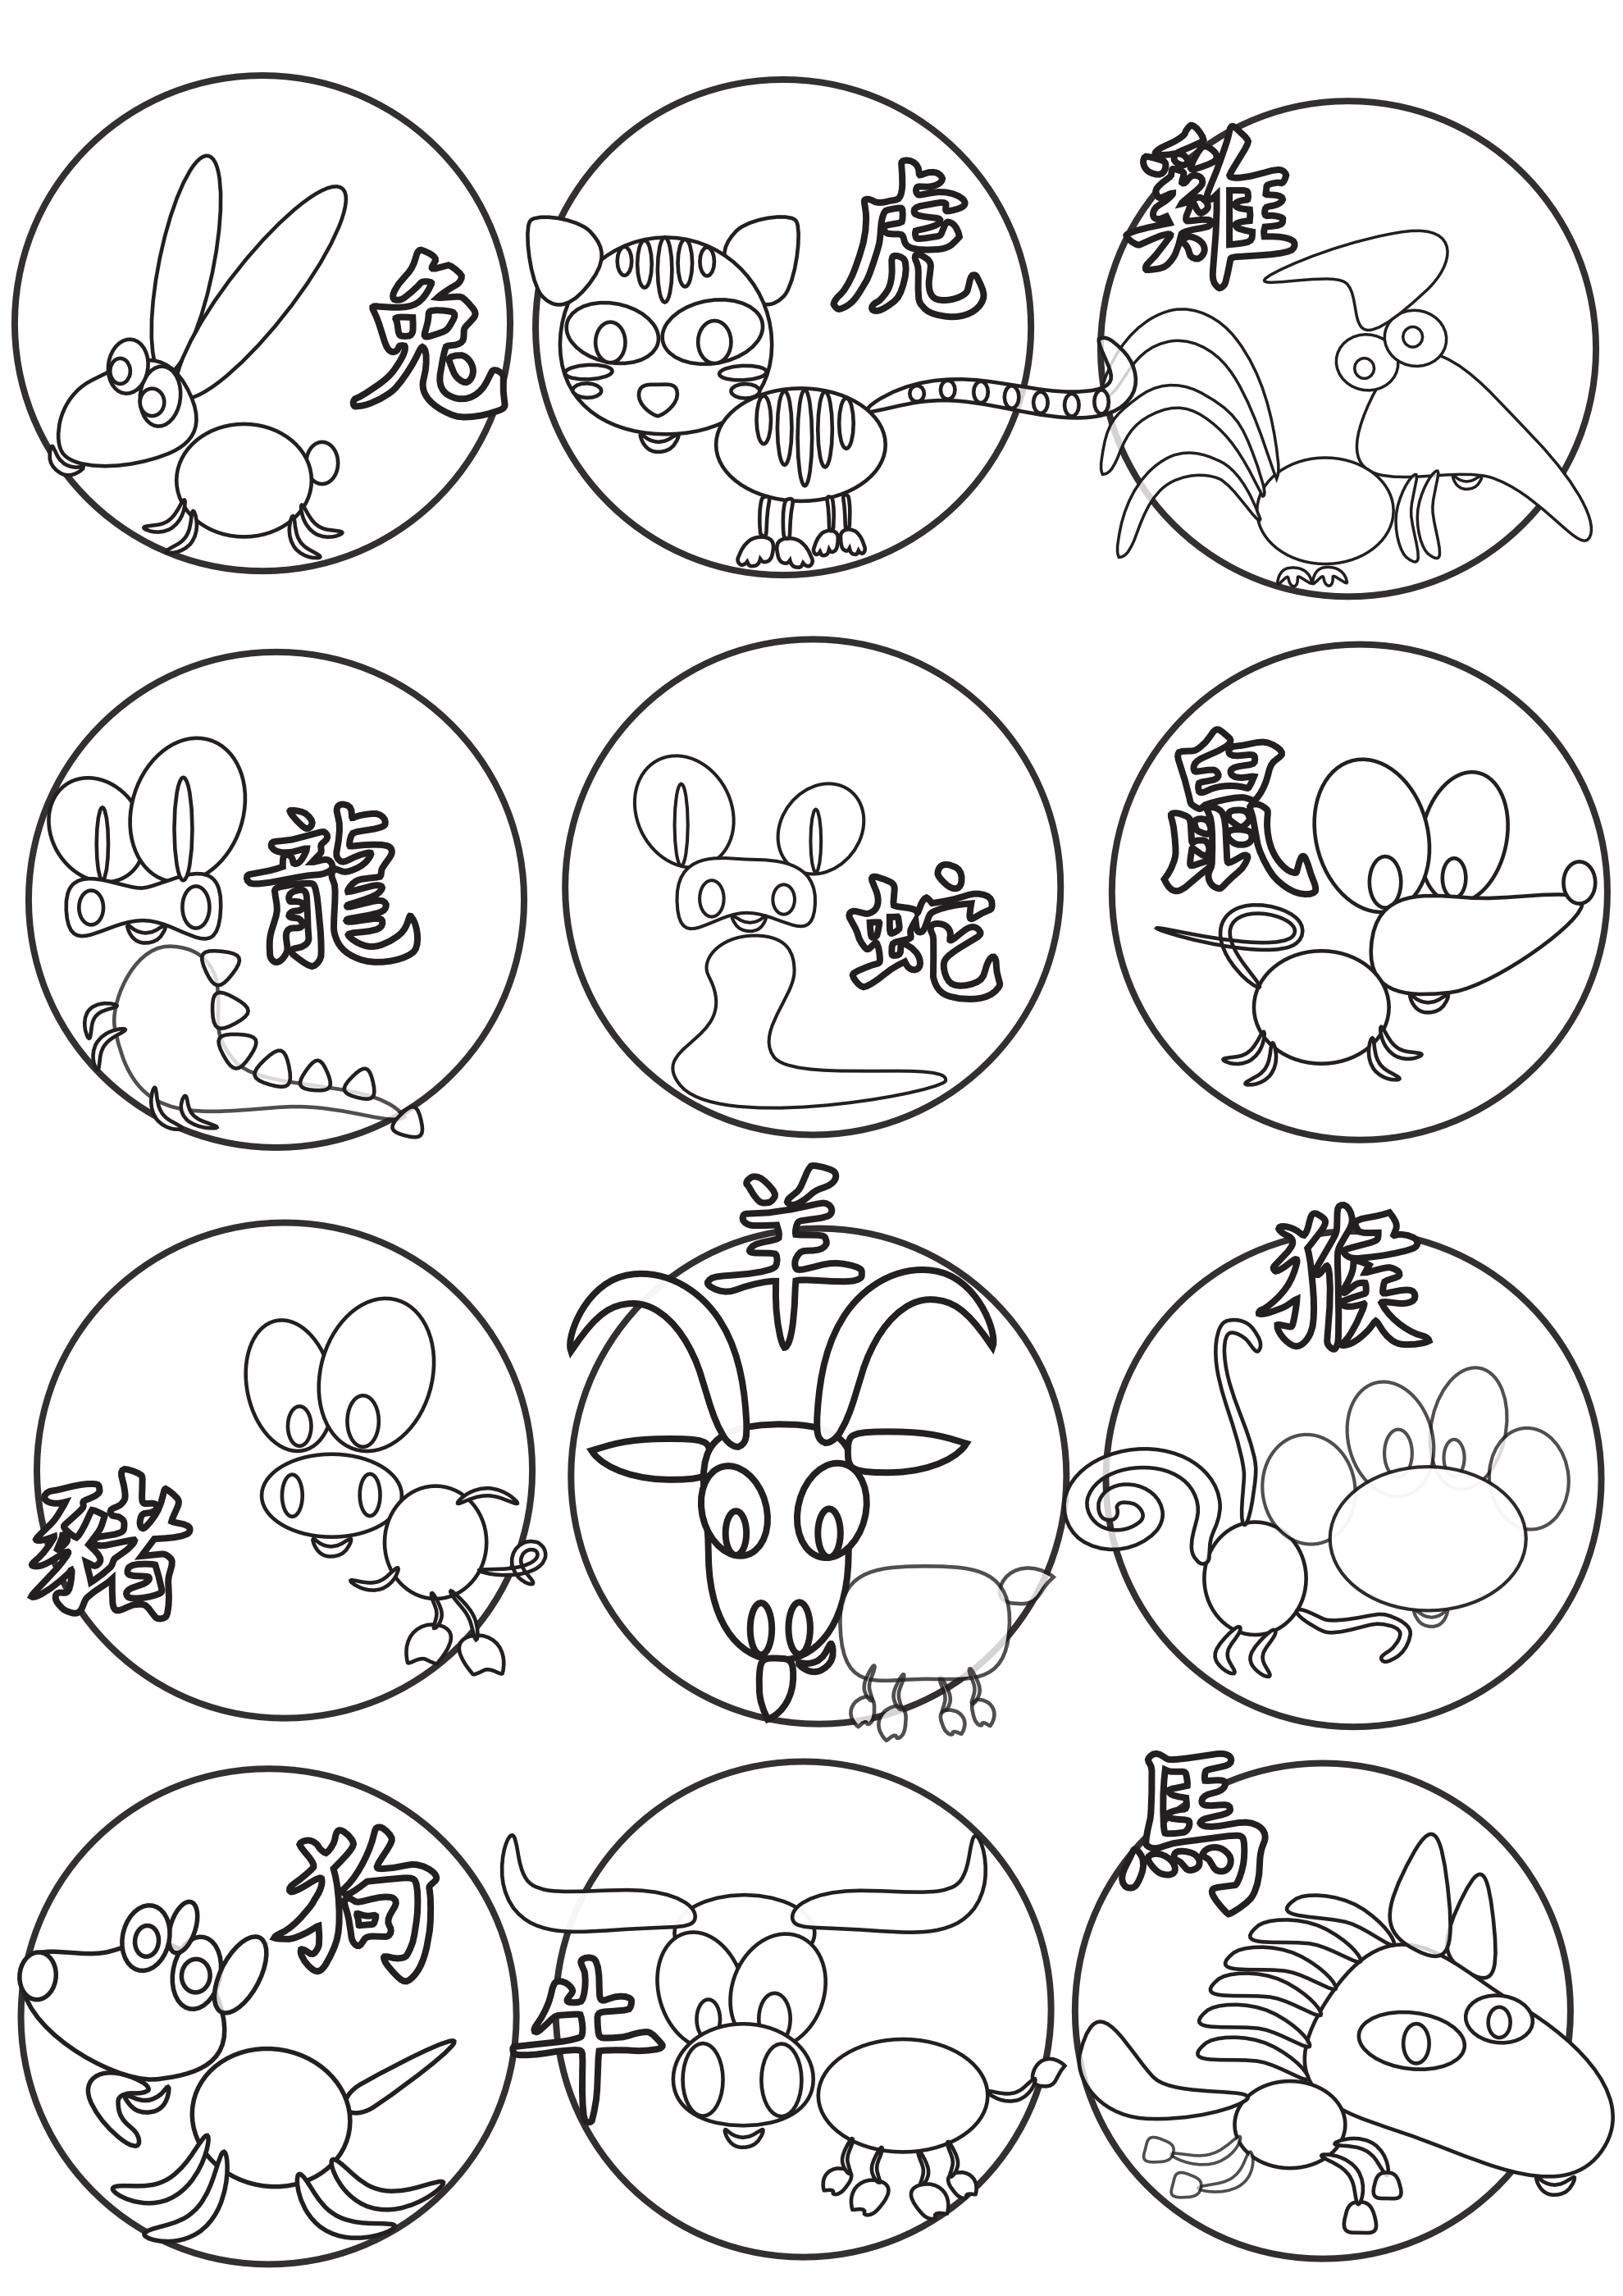 It is an image of Witty Chinese Zodiac Printable